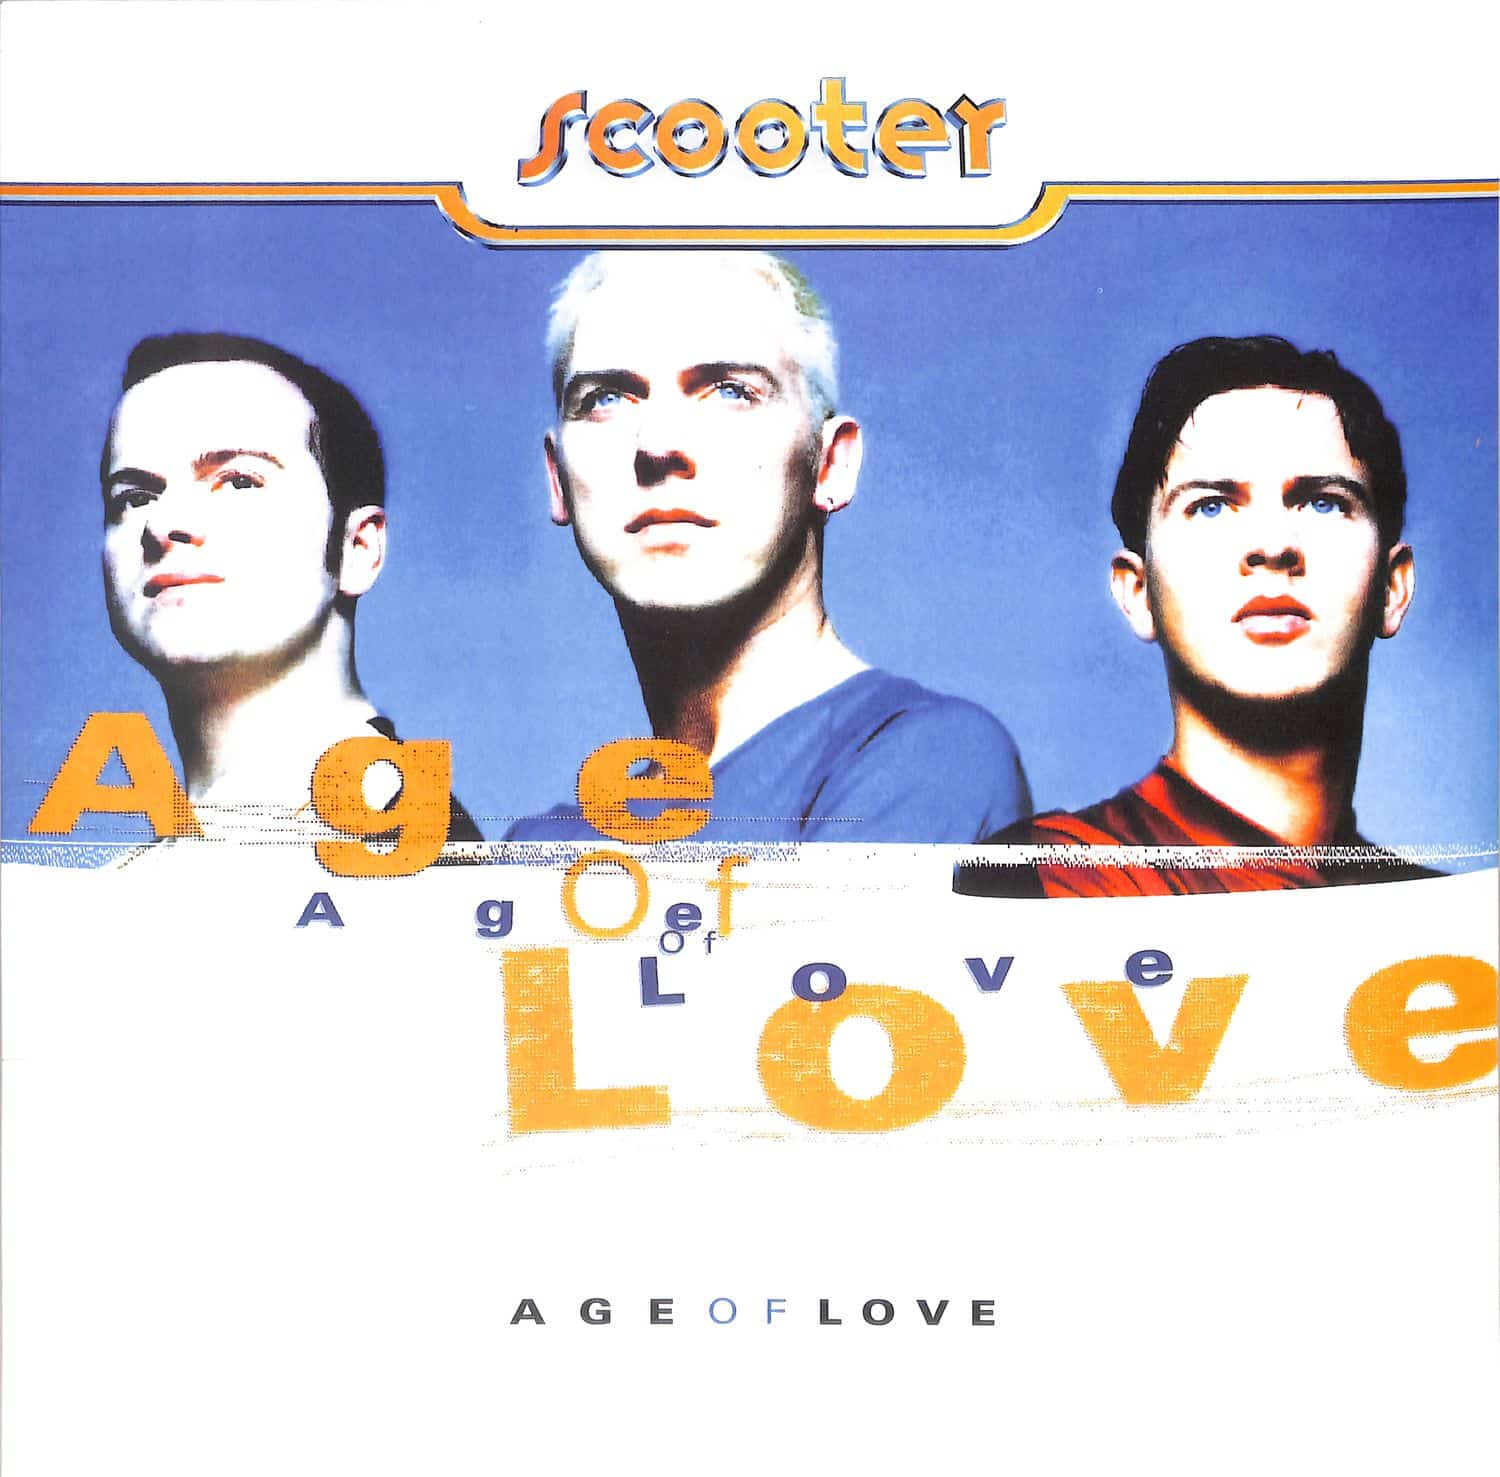 Scooter - AGE OF LOVE